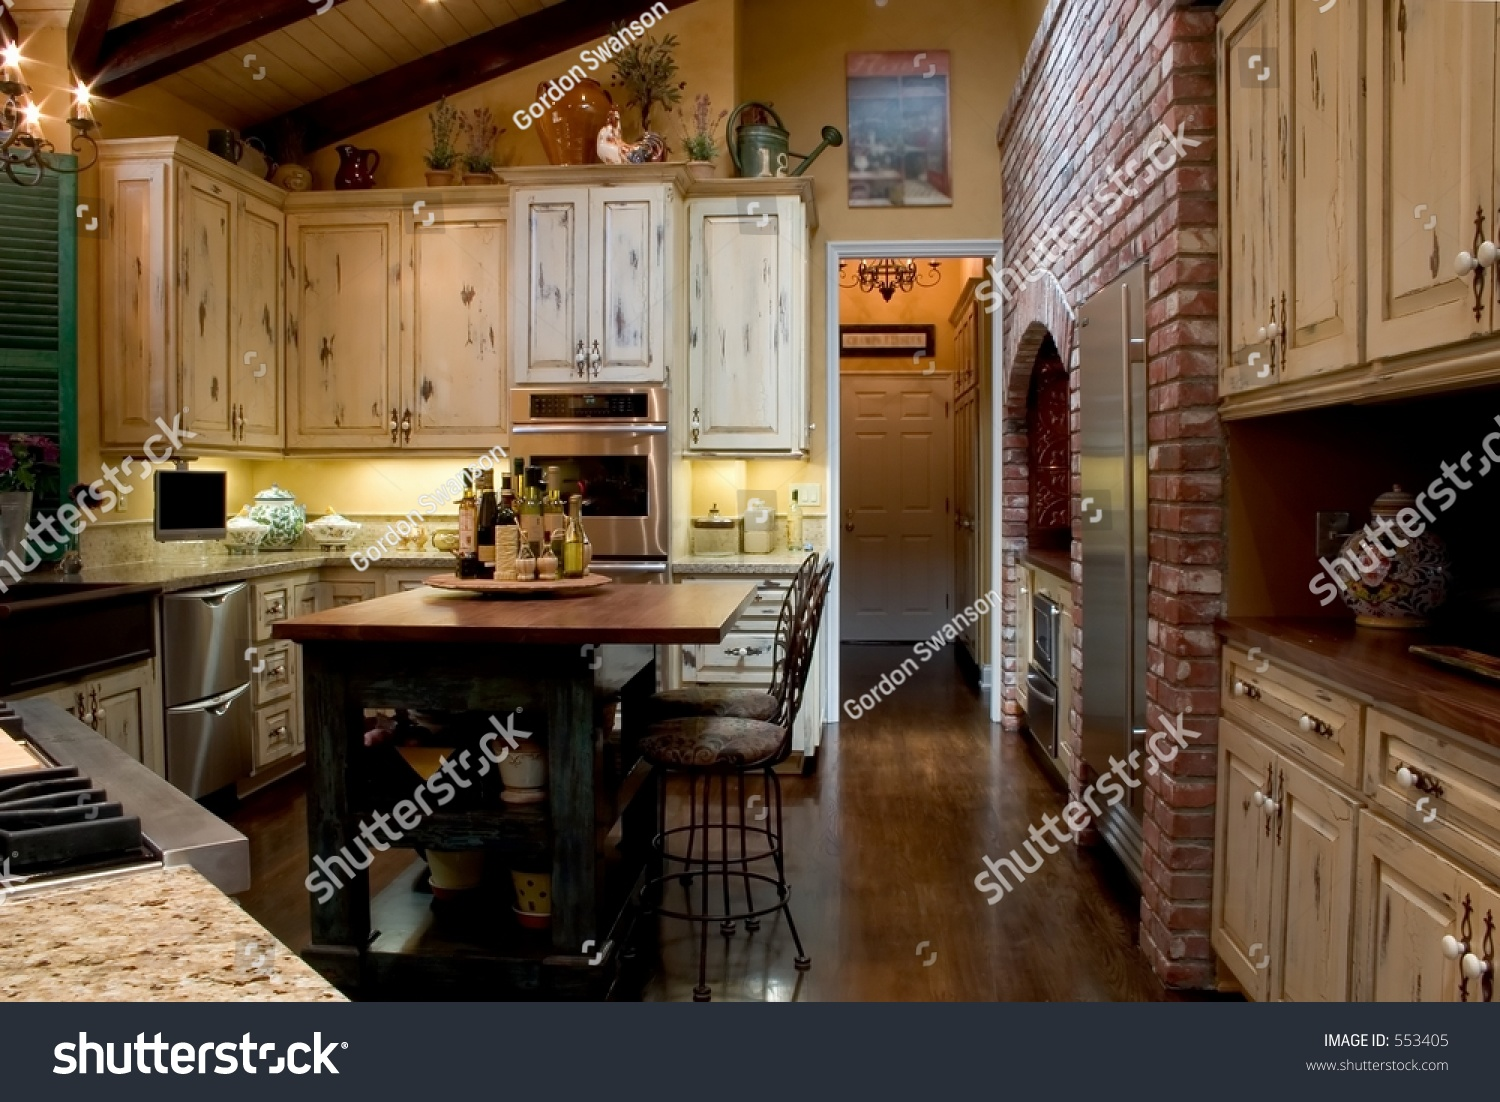 newly remodeled kitchen with a french farmhouse theme - Newly Remodeled Kitchens